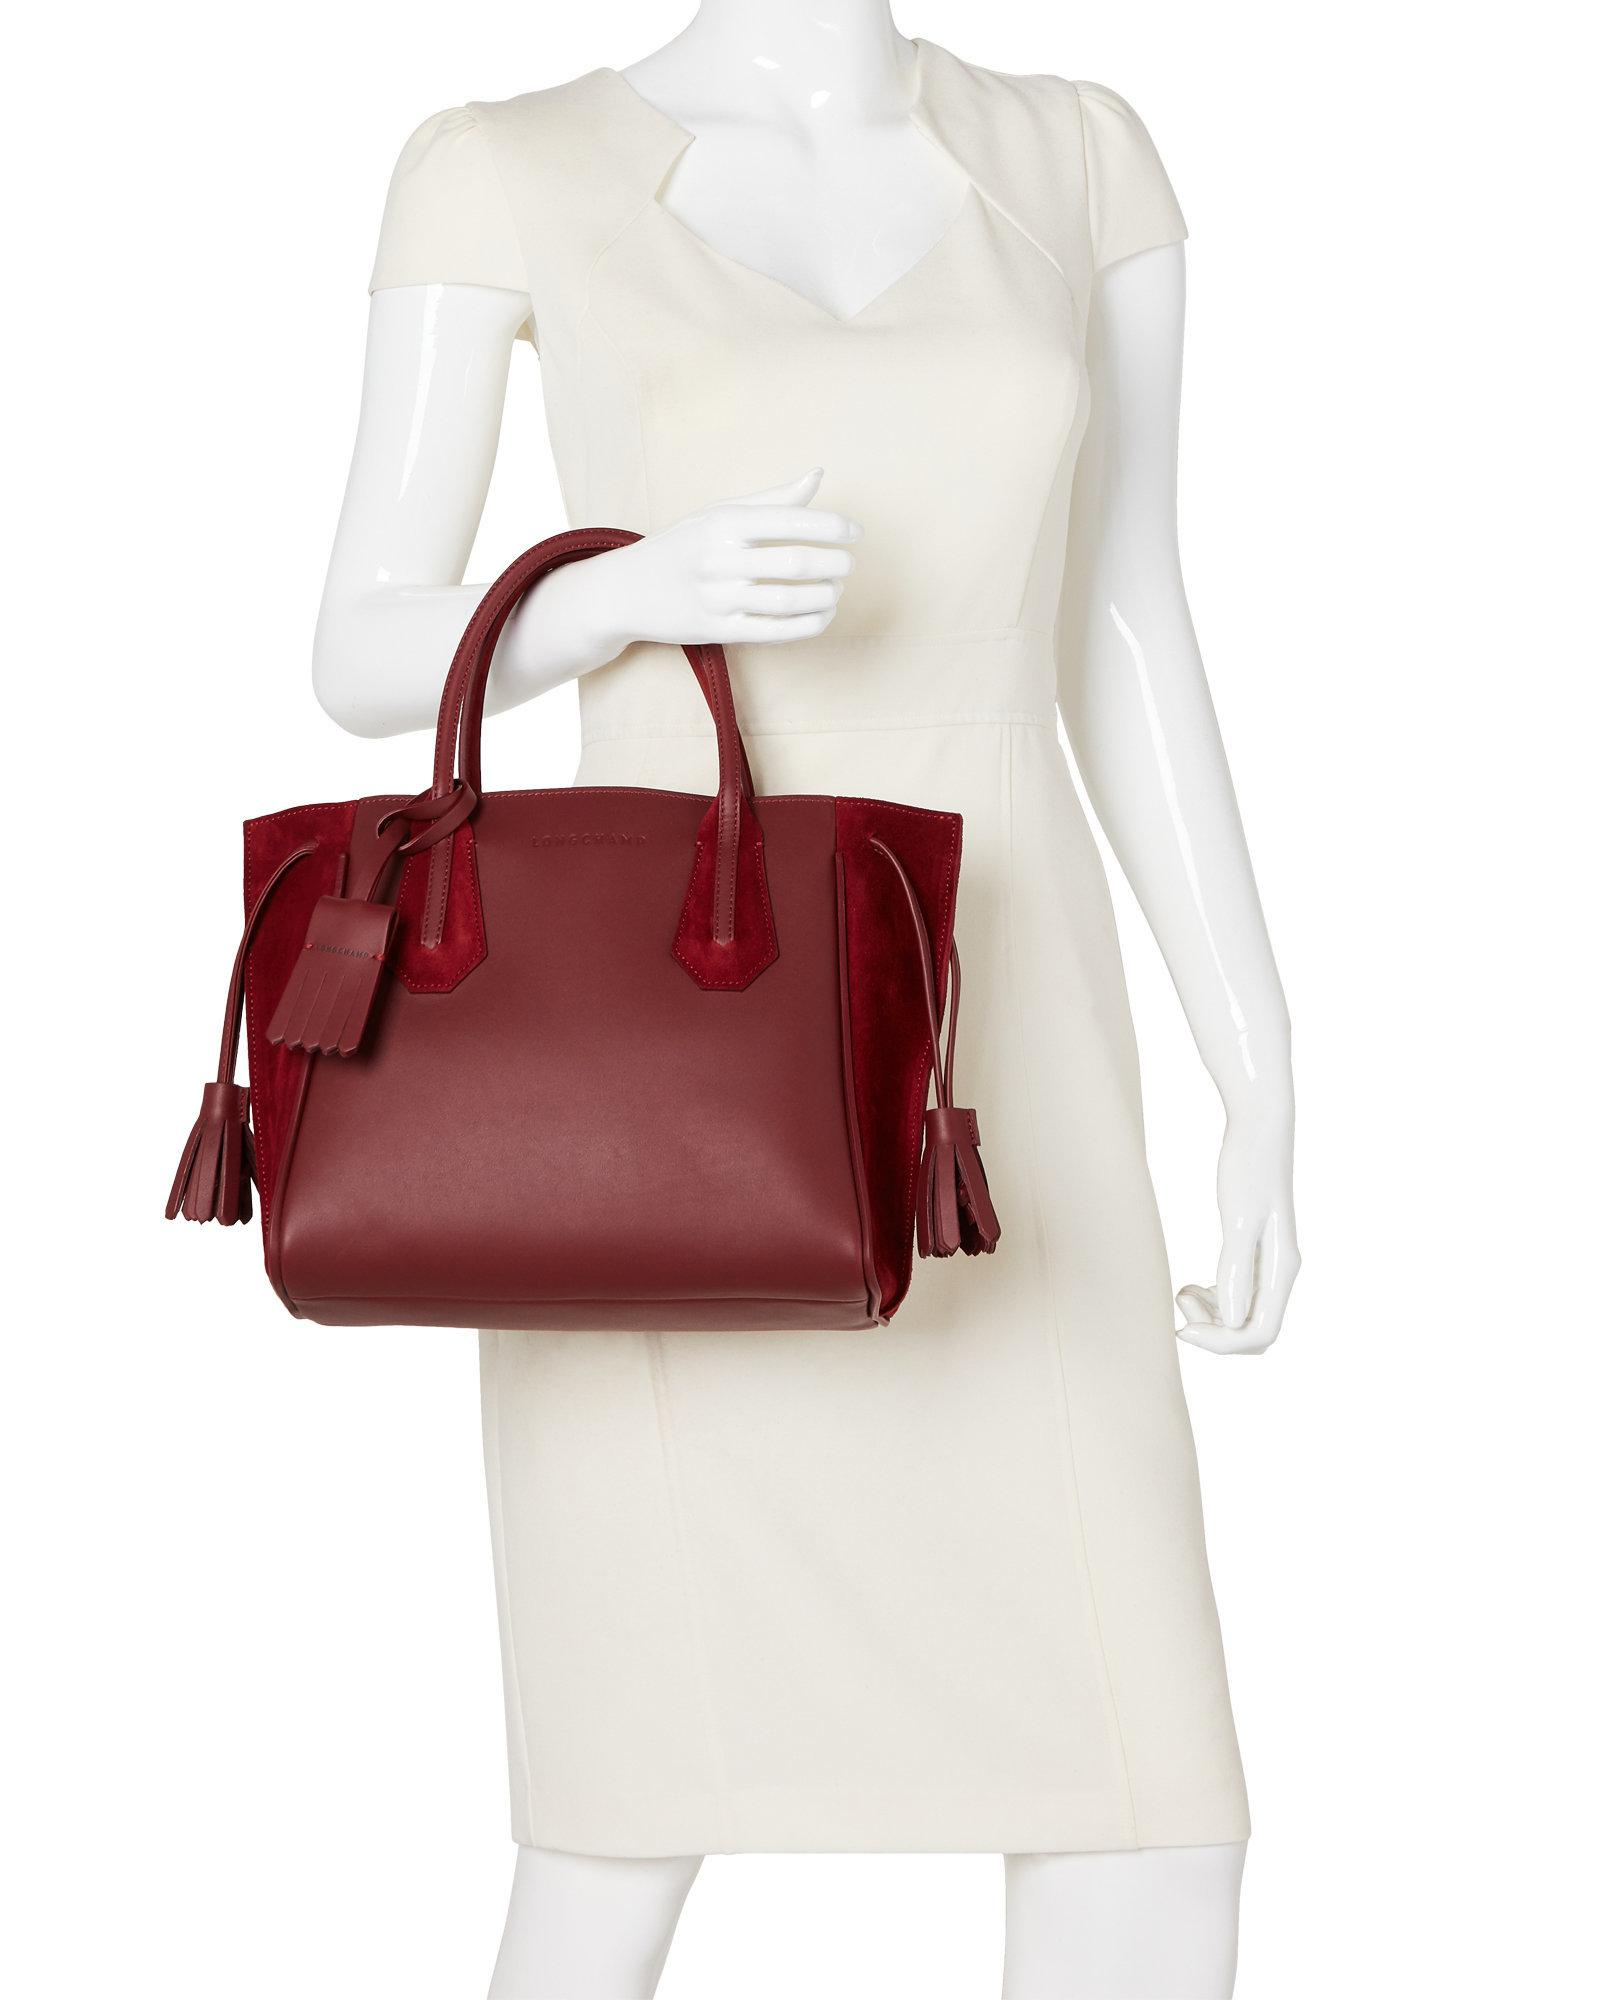 7f3ba5aa02c8 Lyst - Longchamp Burgundy Penelope Small Tote in Red